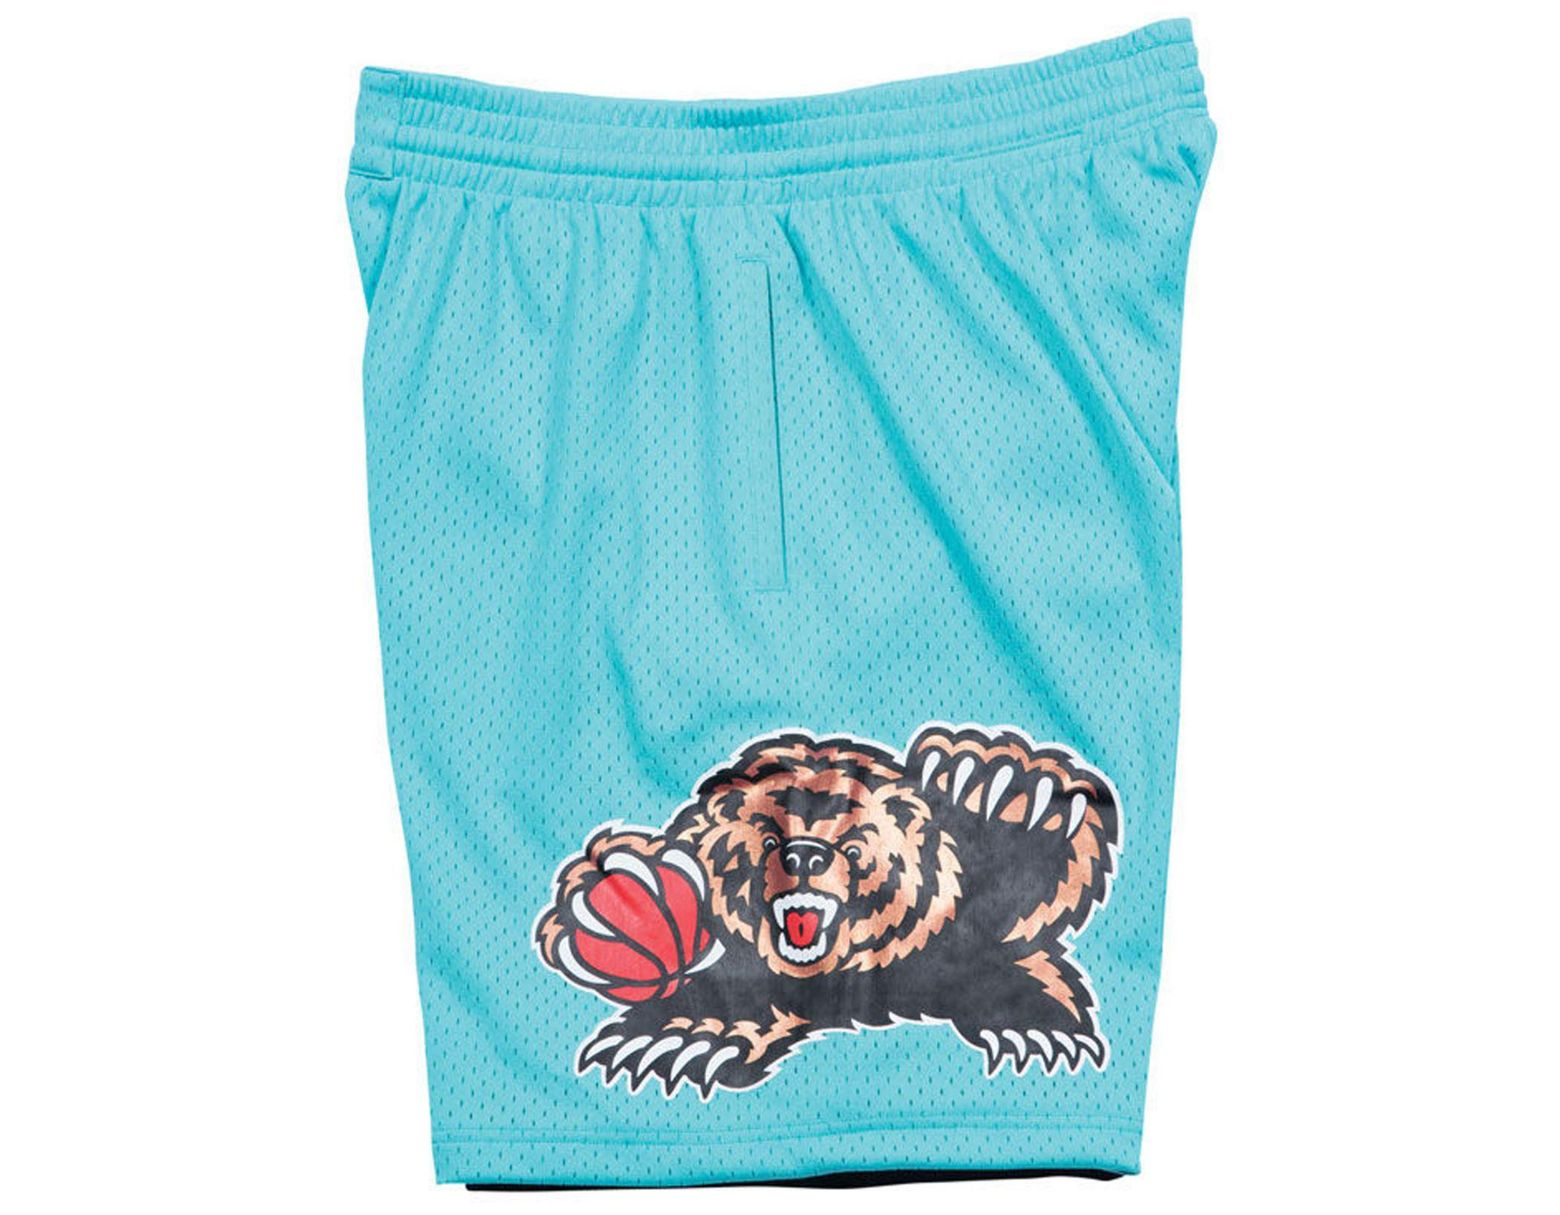 f26bdcc6cfc0e Mitchell & Ness Vancouver Grizzlies Swingman Shorts in Blue for Men - Lyst